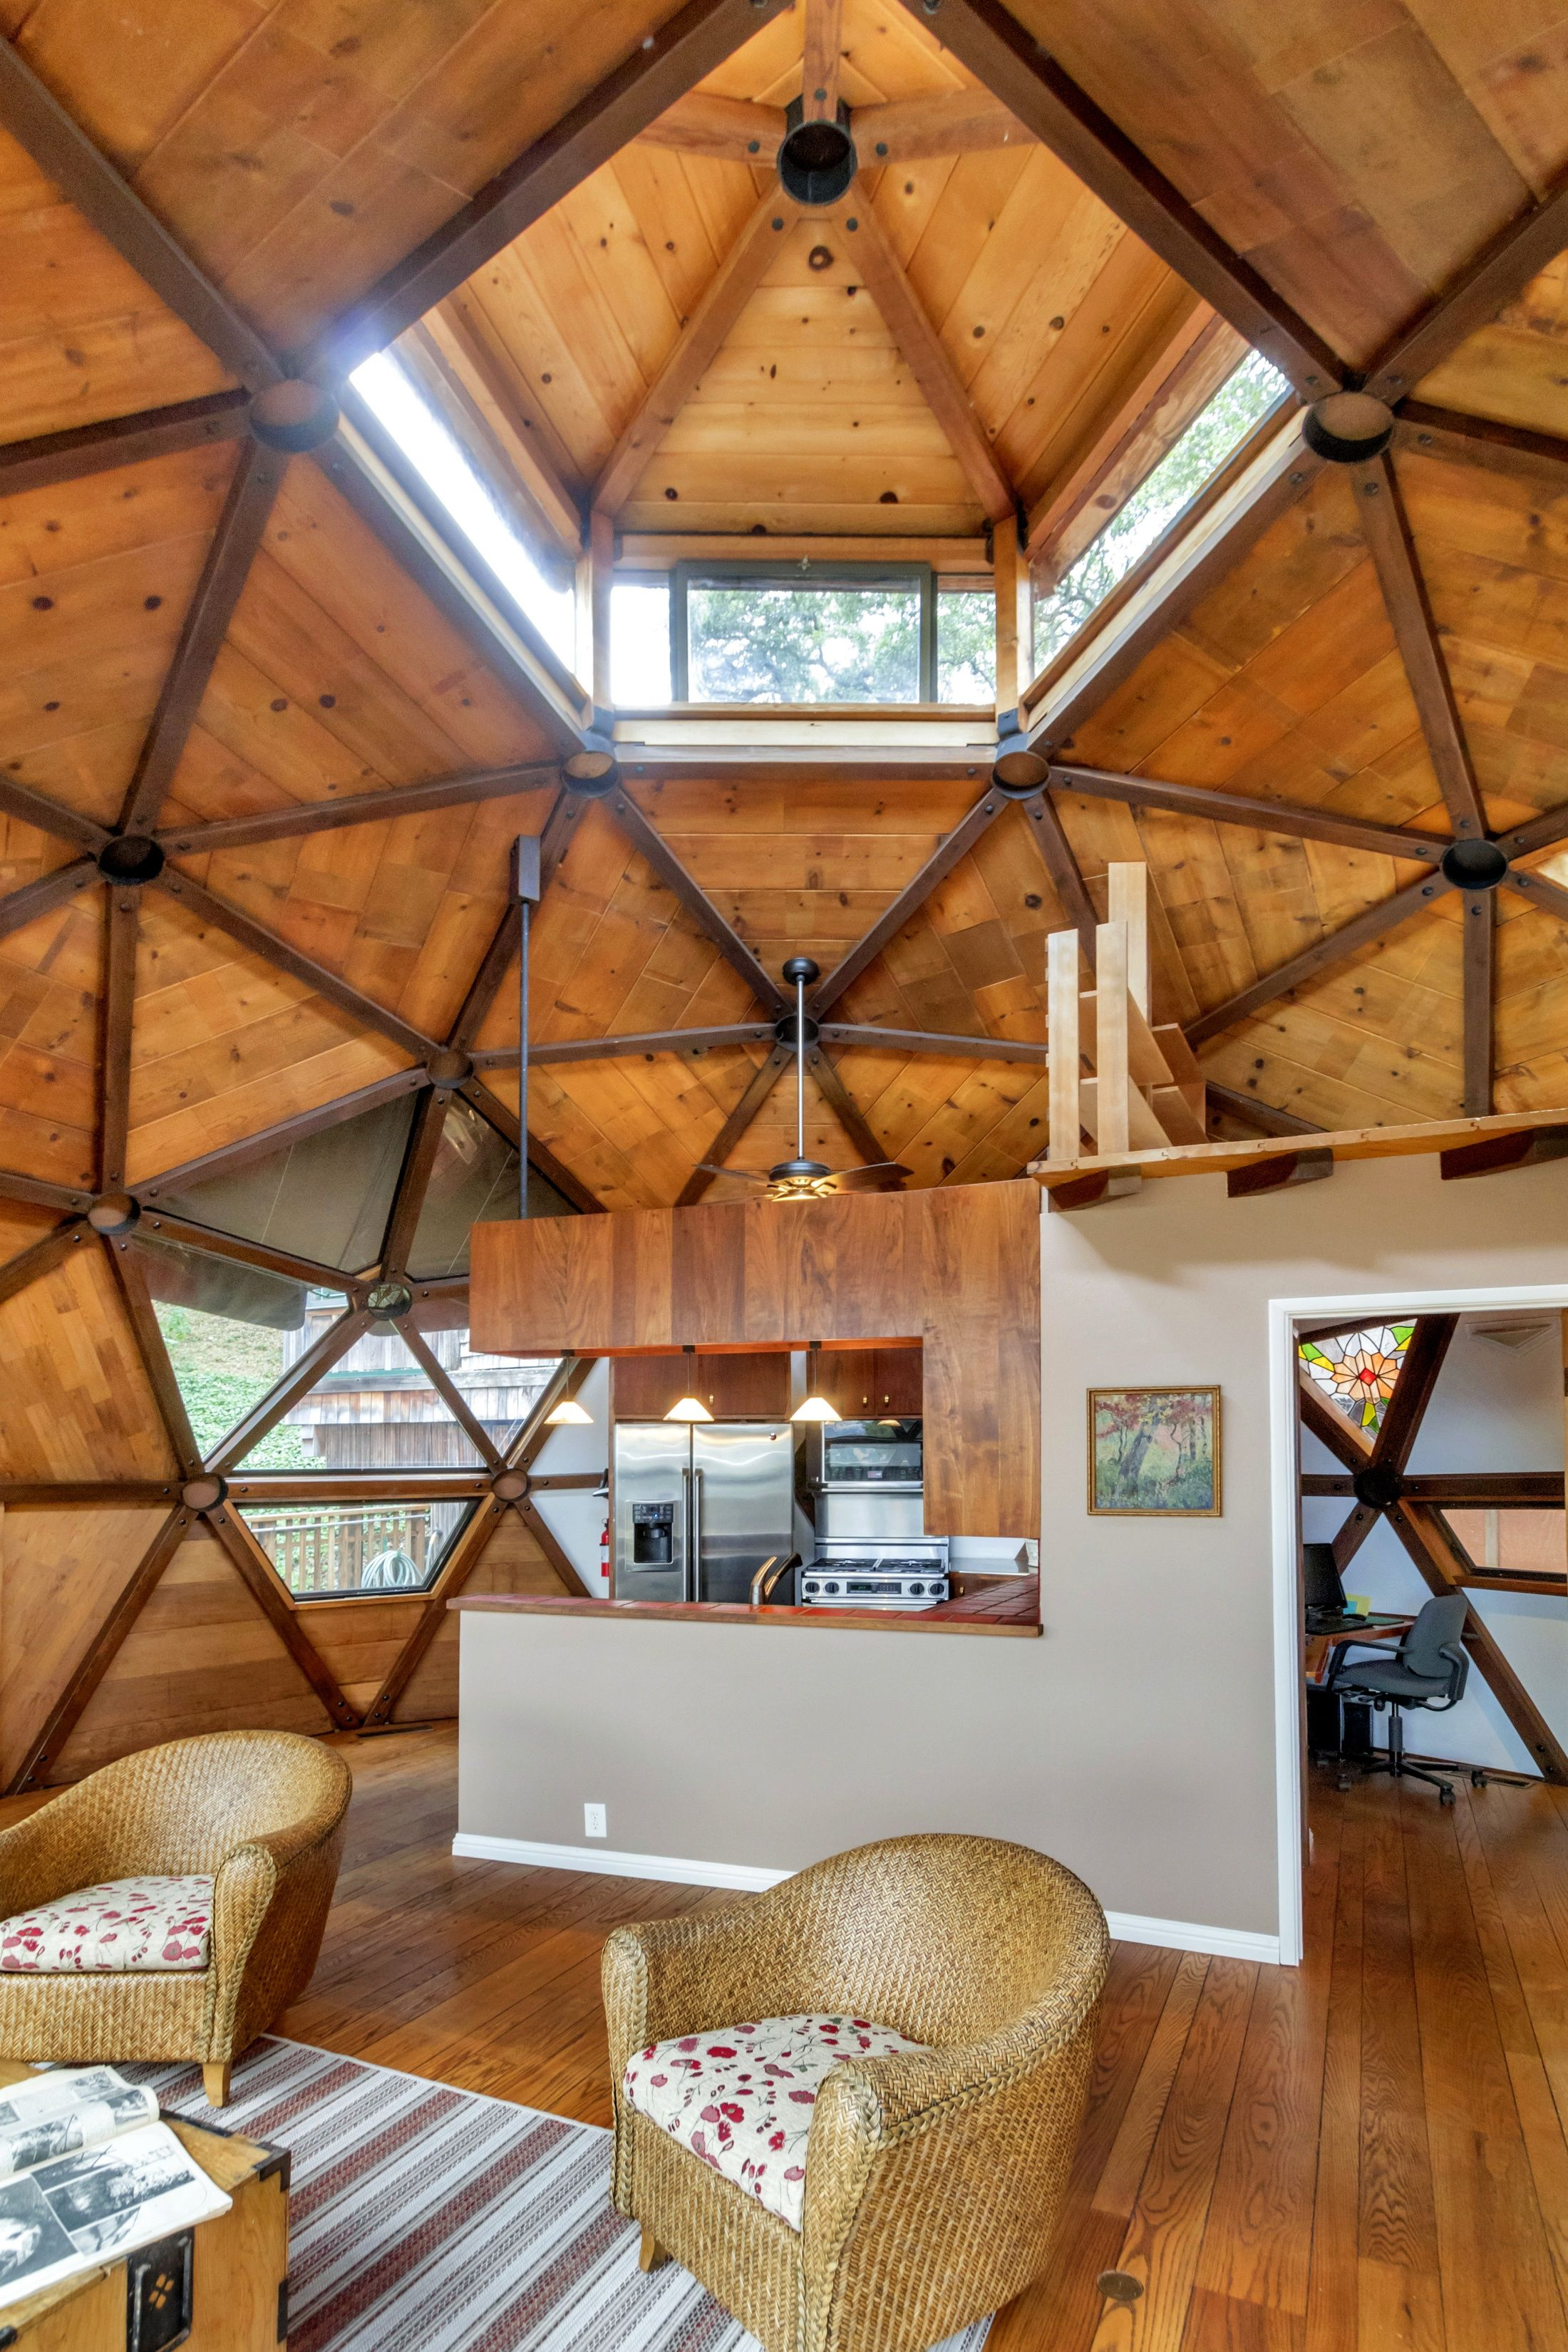 A mountain view from the interior of a geodesic dome in Prahova, Romania. | Geodesic  Dome Homes | Pinterest | Interiors, House and Spaces